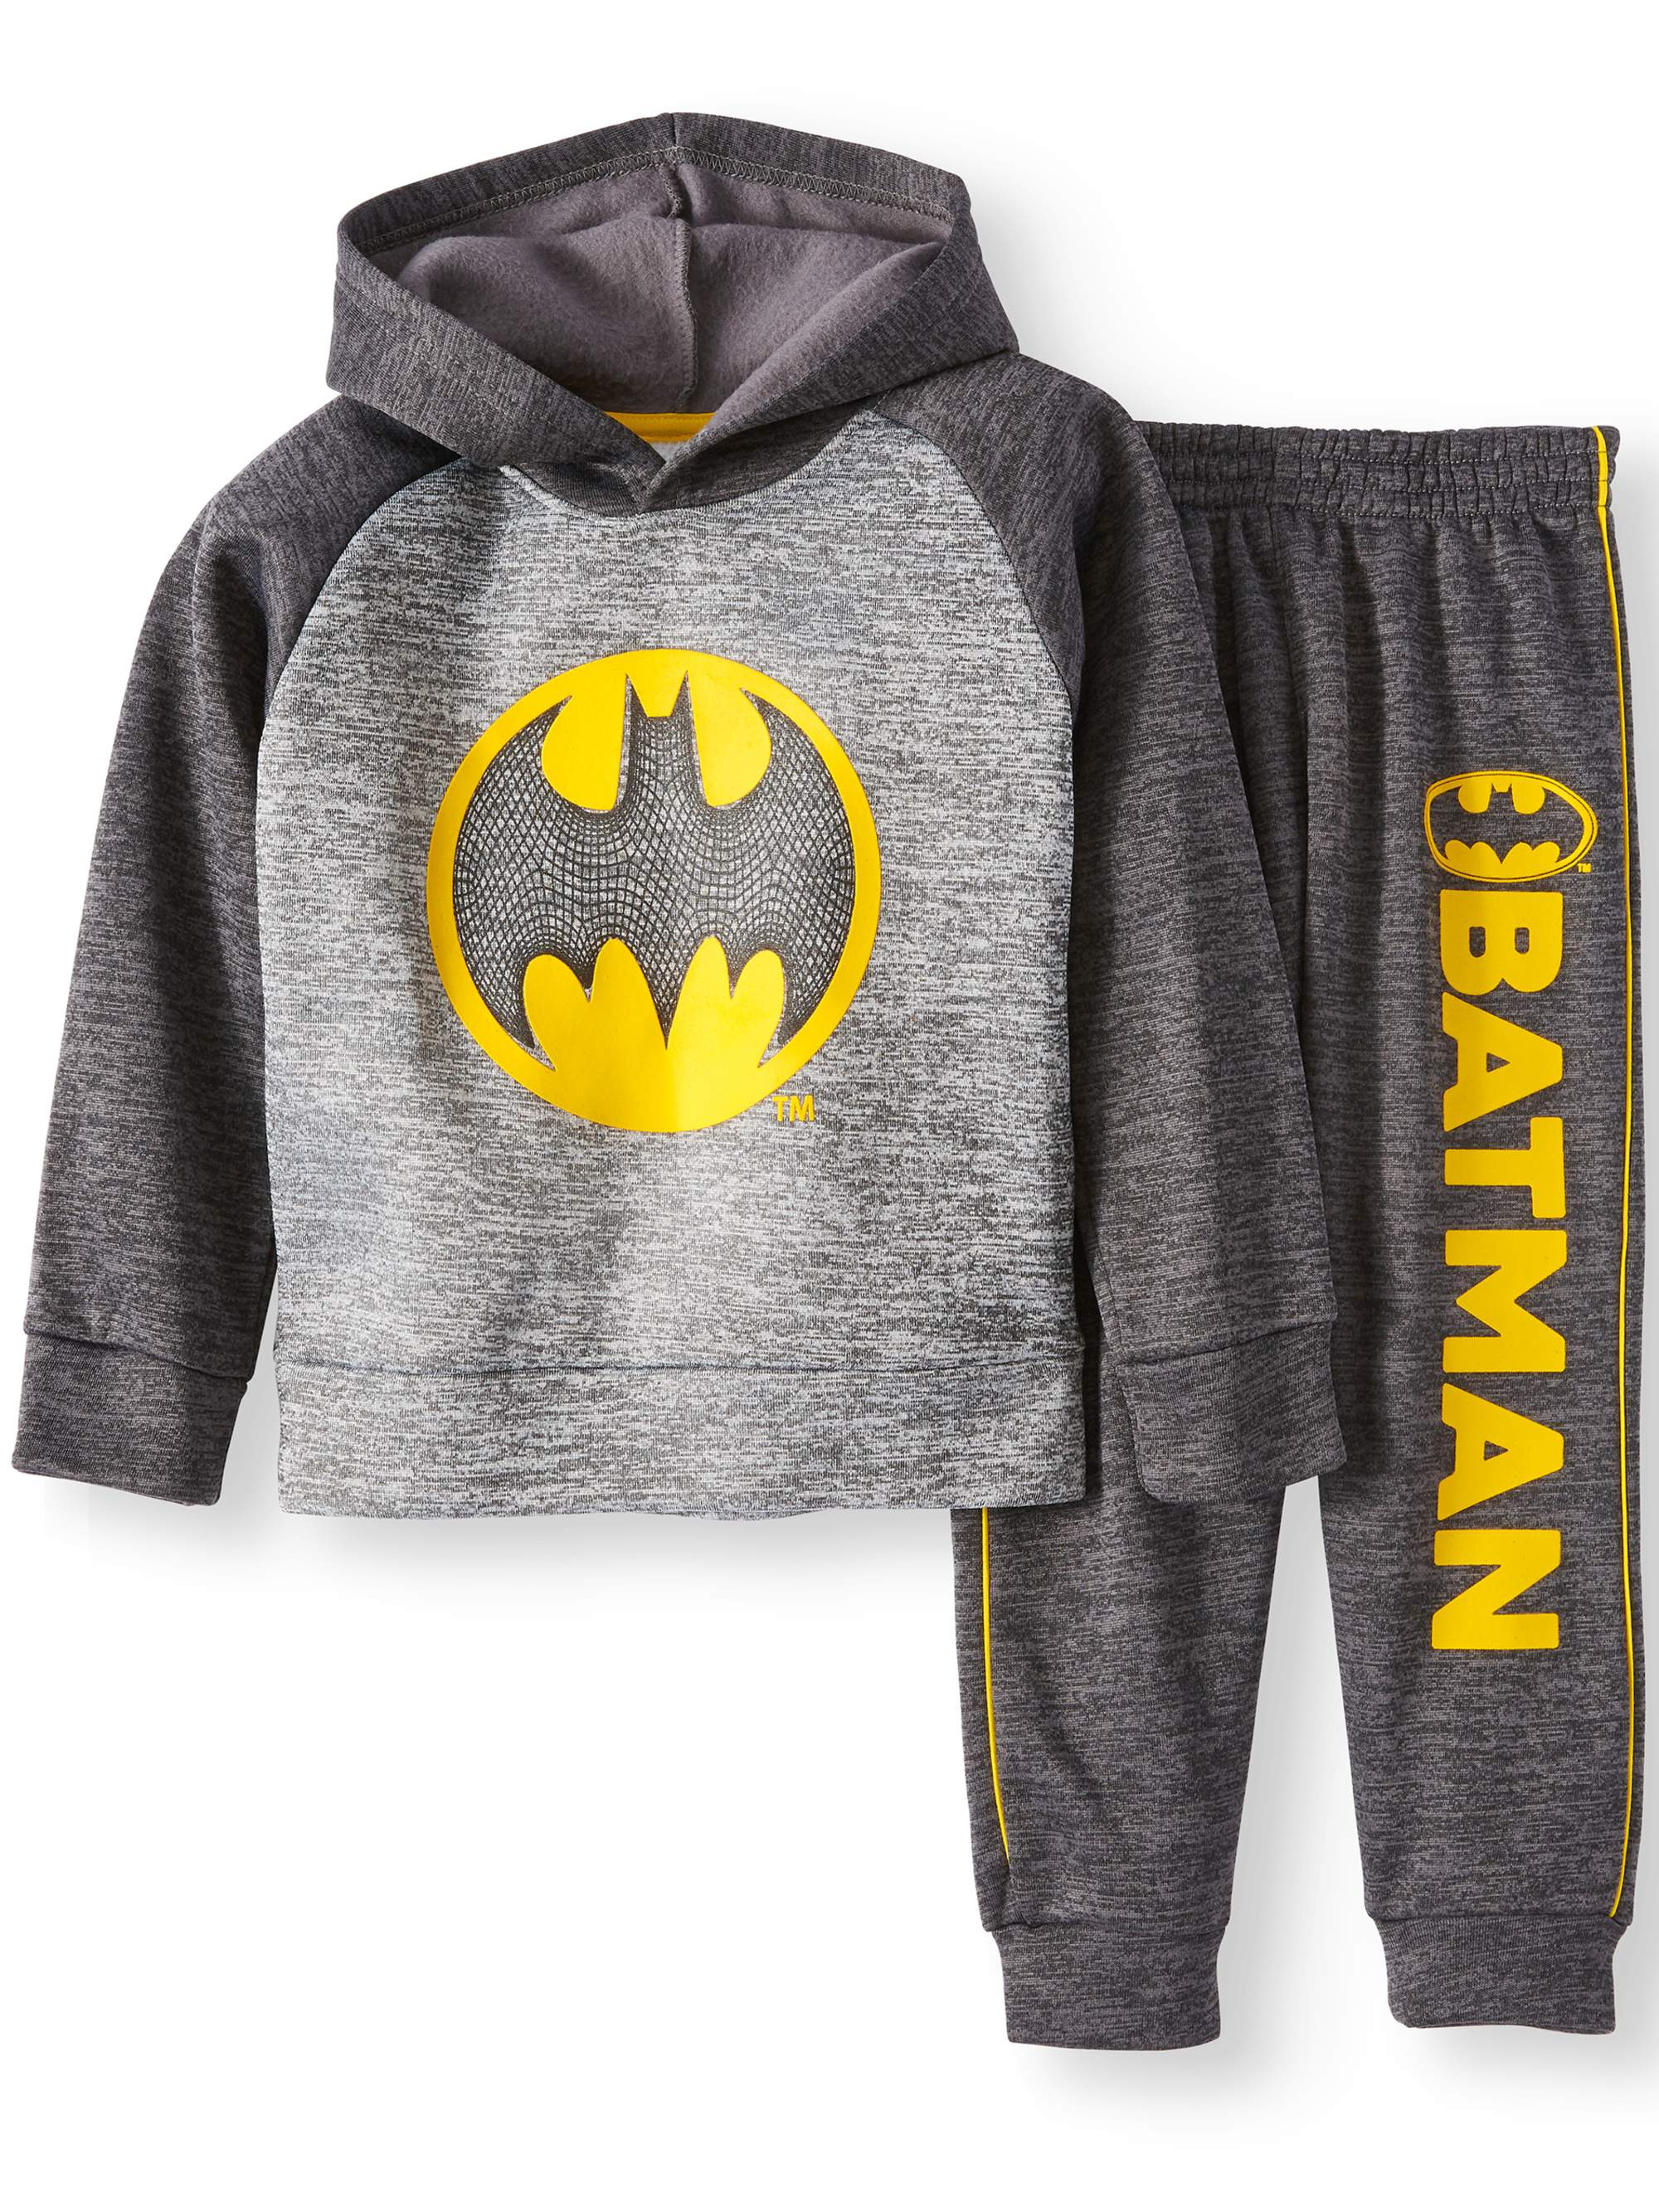 Pull Over Batman Hoodie and Jogger 2 Piece Set (Little Boys) by Isaac Morris Ltd.